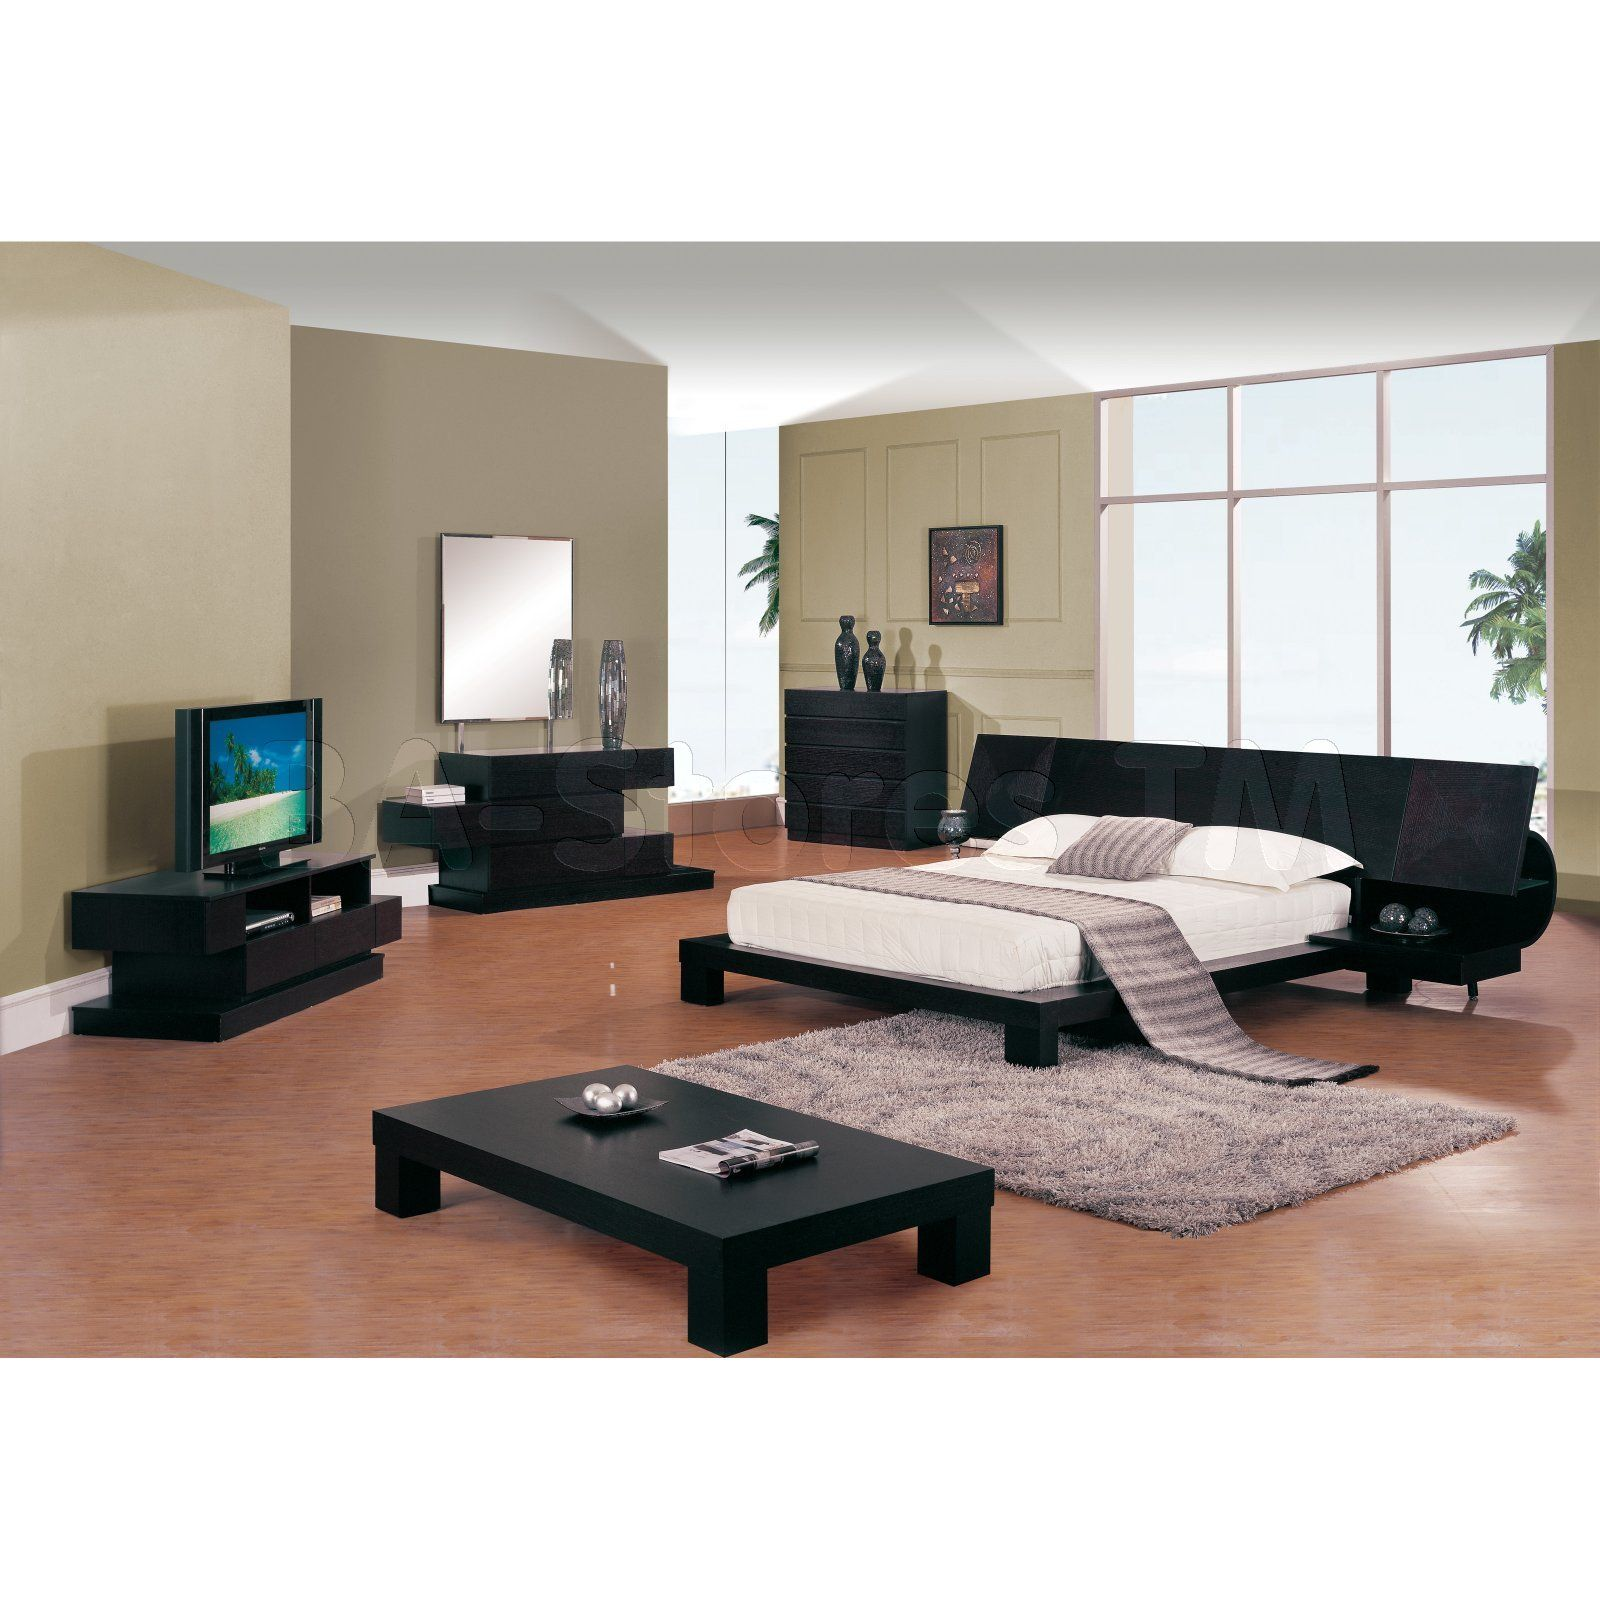 Delightful Soho Wenge Bedroom Set (Bed, Dresser, Mirror, 2 Nightstands)   Global